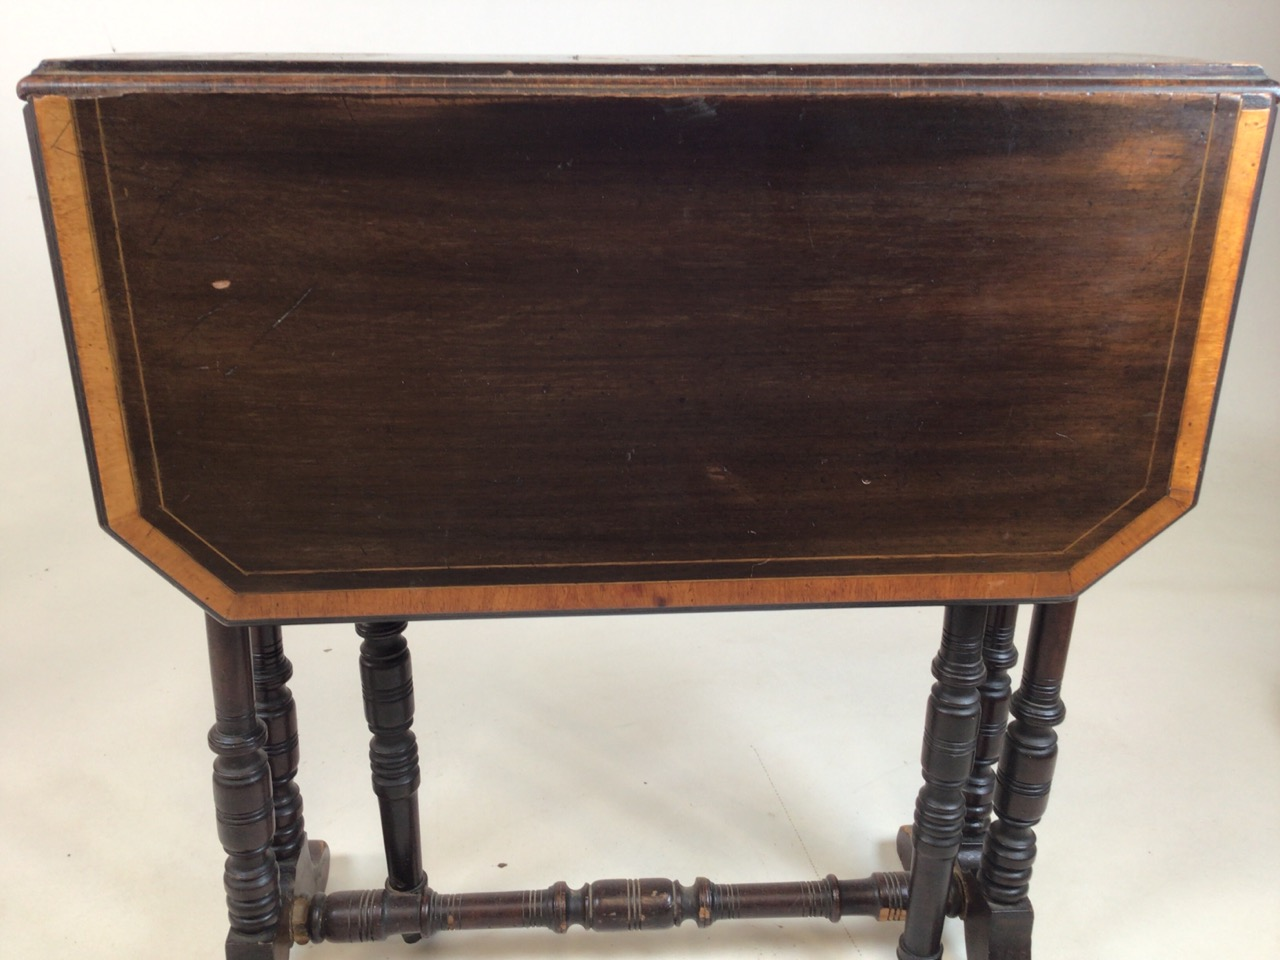 A small Edwardian mahogany inlaid Sutherland table with turned legs and stretcher with ceramic - Image 6 of 9